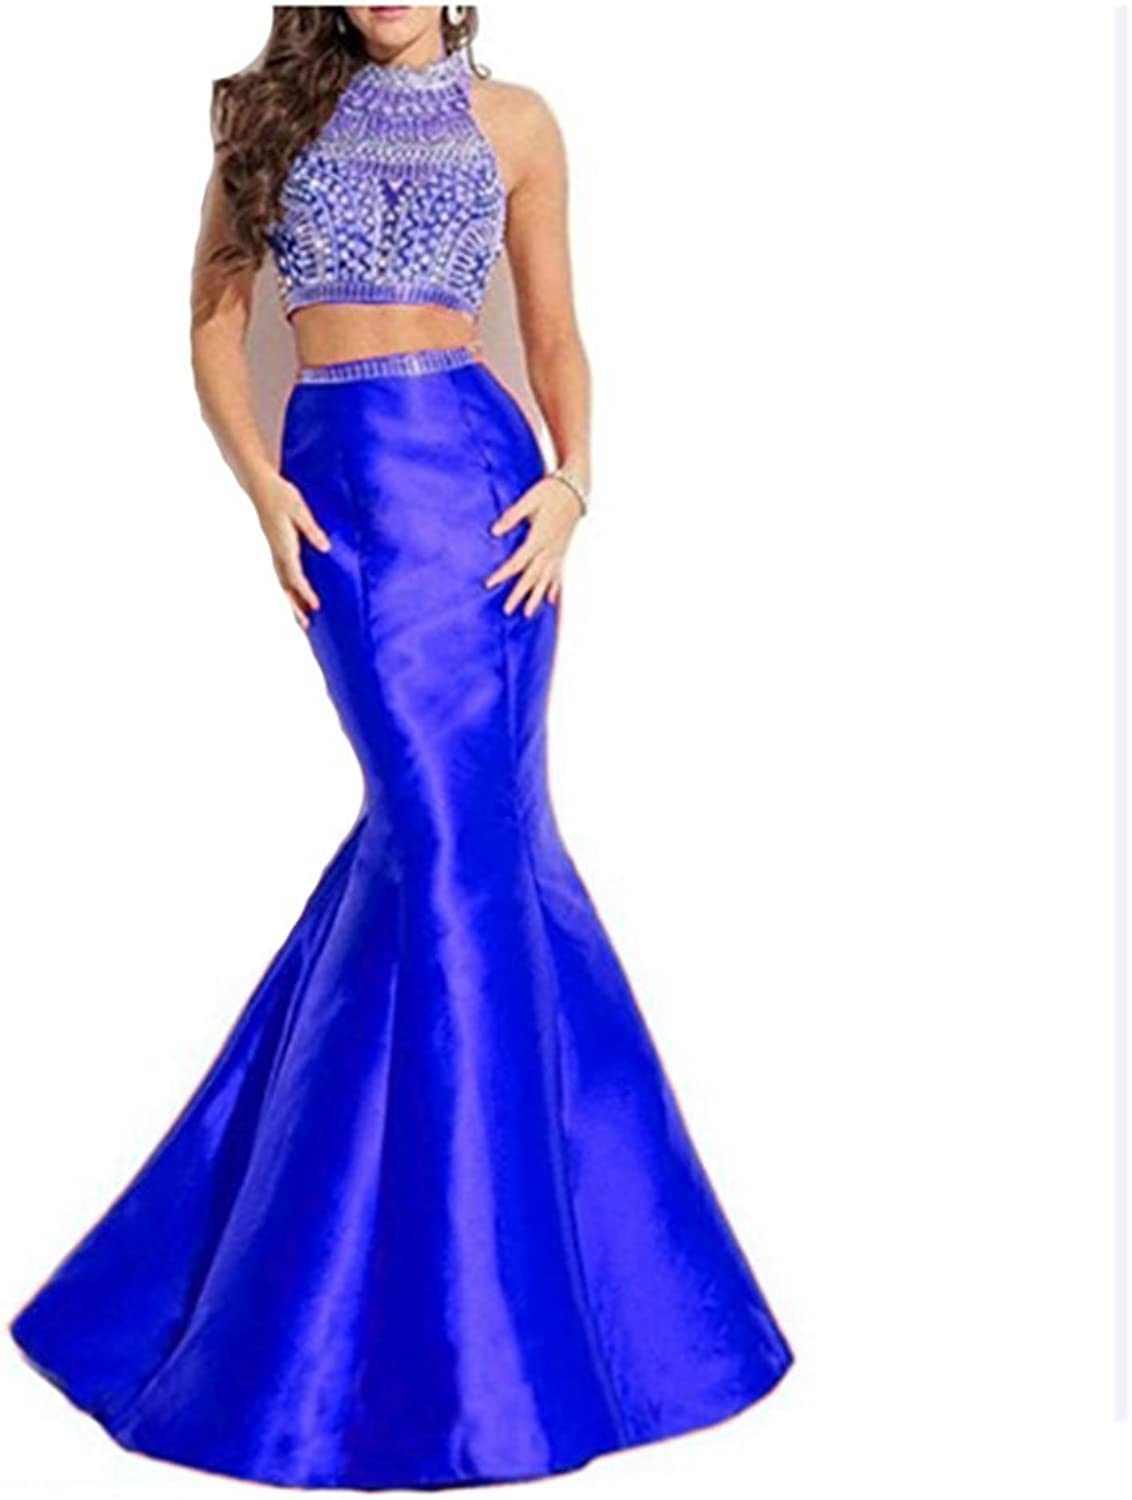 Angela Women's Rhinestones Long Two Piece Prom Dress Mermaid Party Gowns